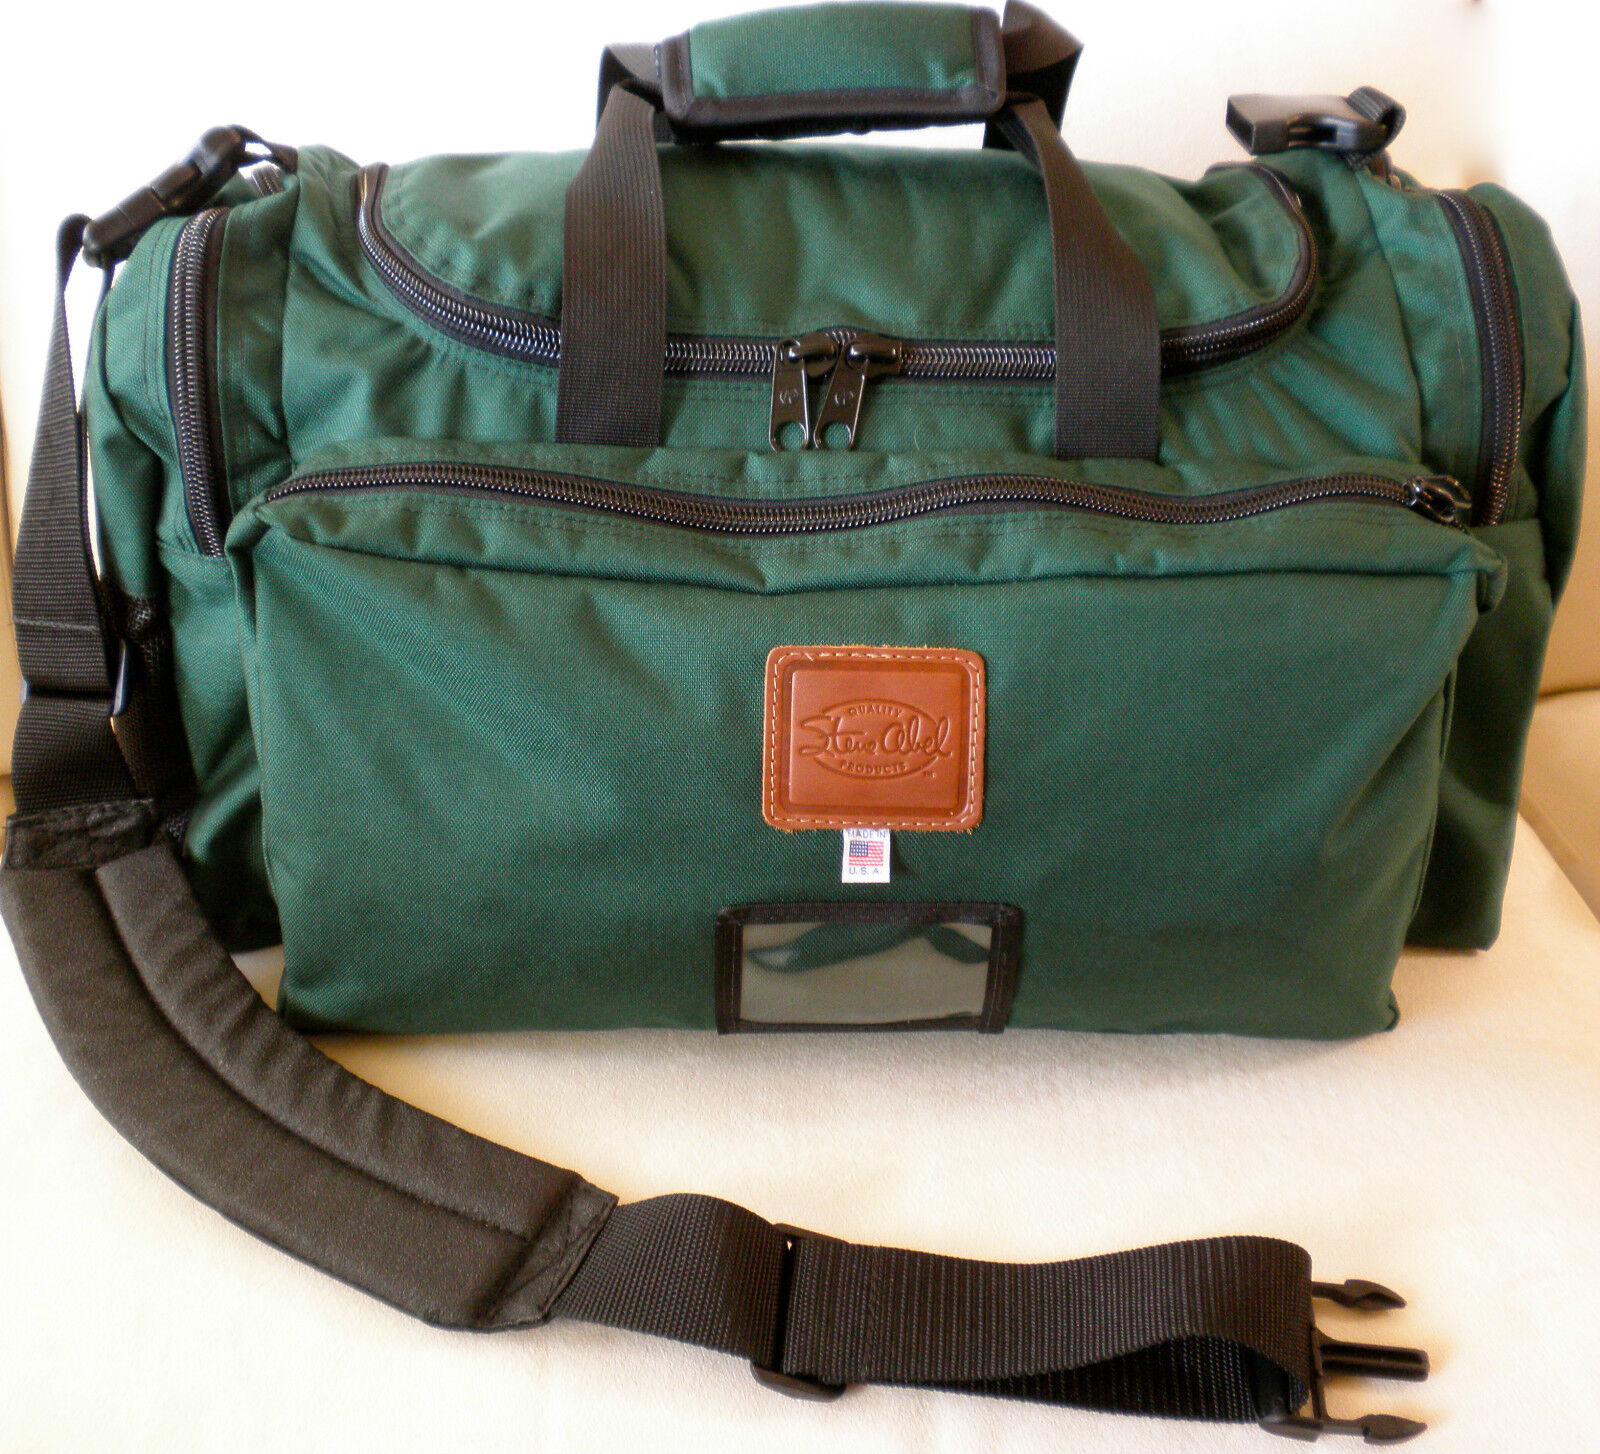 STEVE ABEL FLY FISHING 10 DAY TRAVEL BAG DUFFLE by creator of ABEL REELS